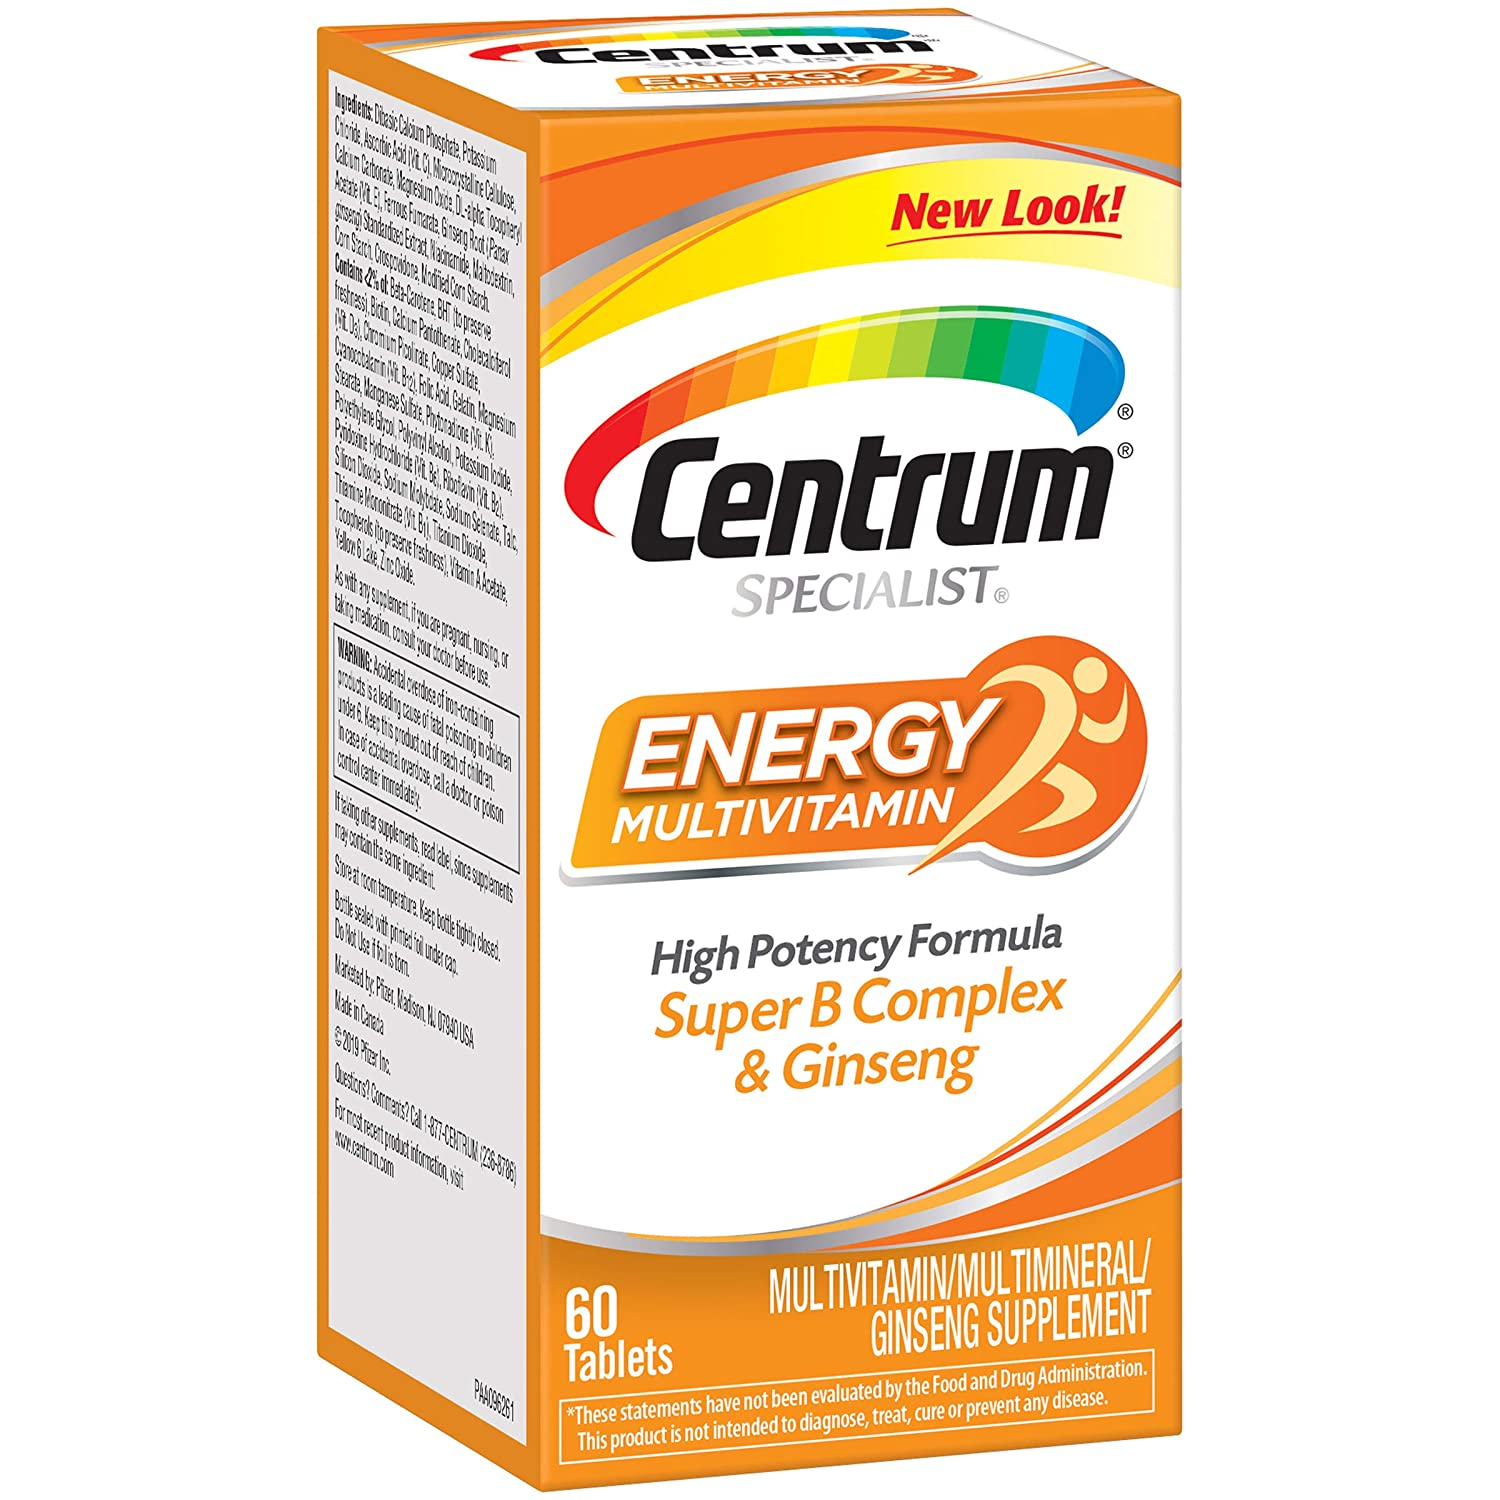 Centrum Specialist Energy Complete Multivitamin/Multimineral Supplement Tablet, Vitamin D3 and Vitamin C, 60 Count